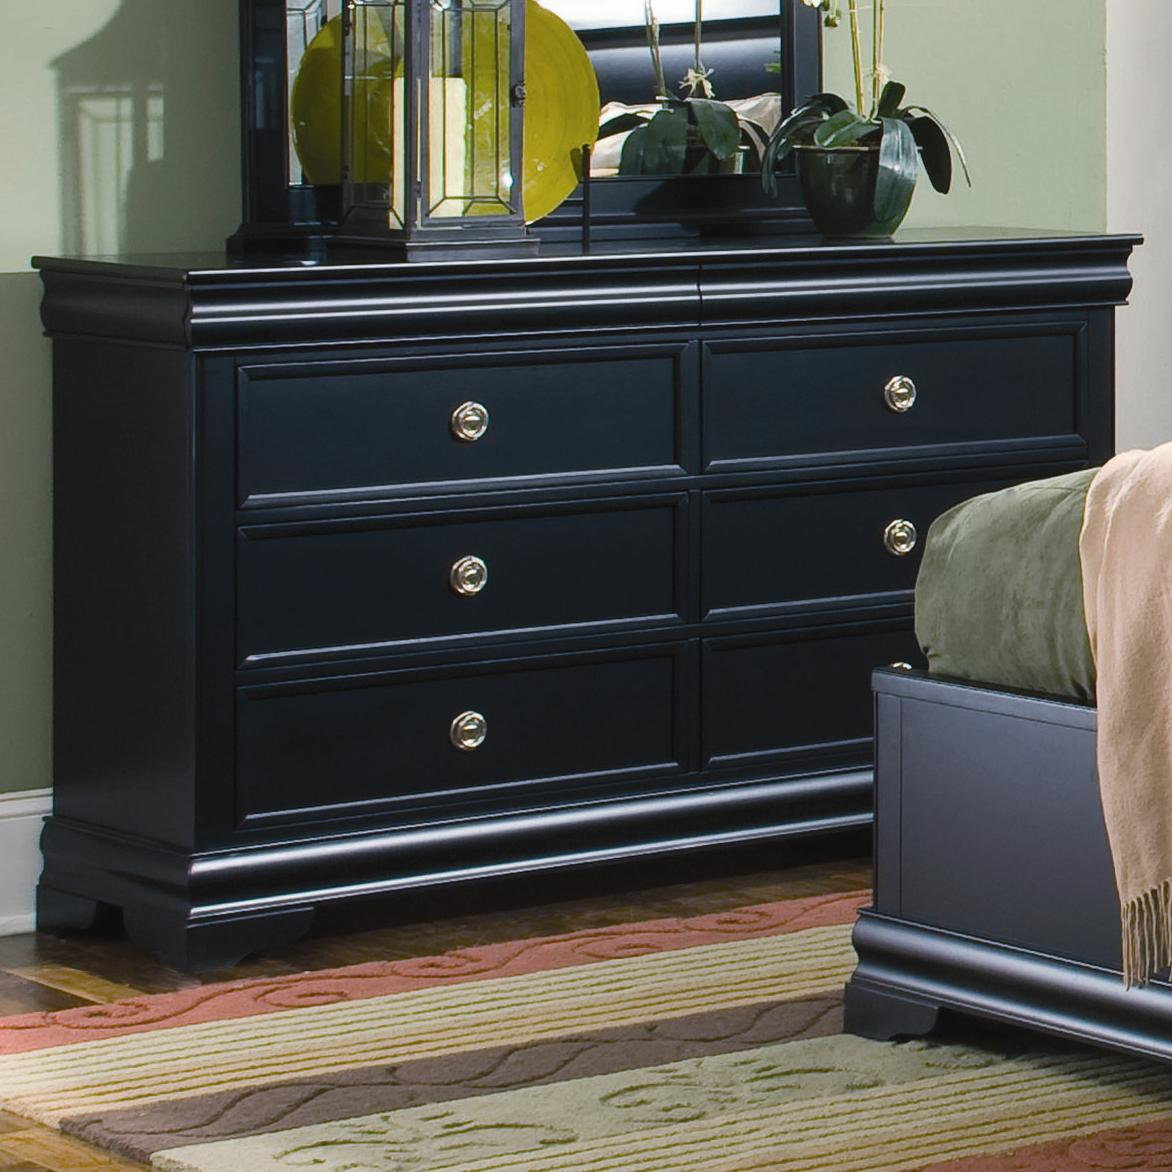 Louis Philippe Dresser With 6 Drawers And Hidden Jewelry Storage